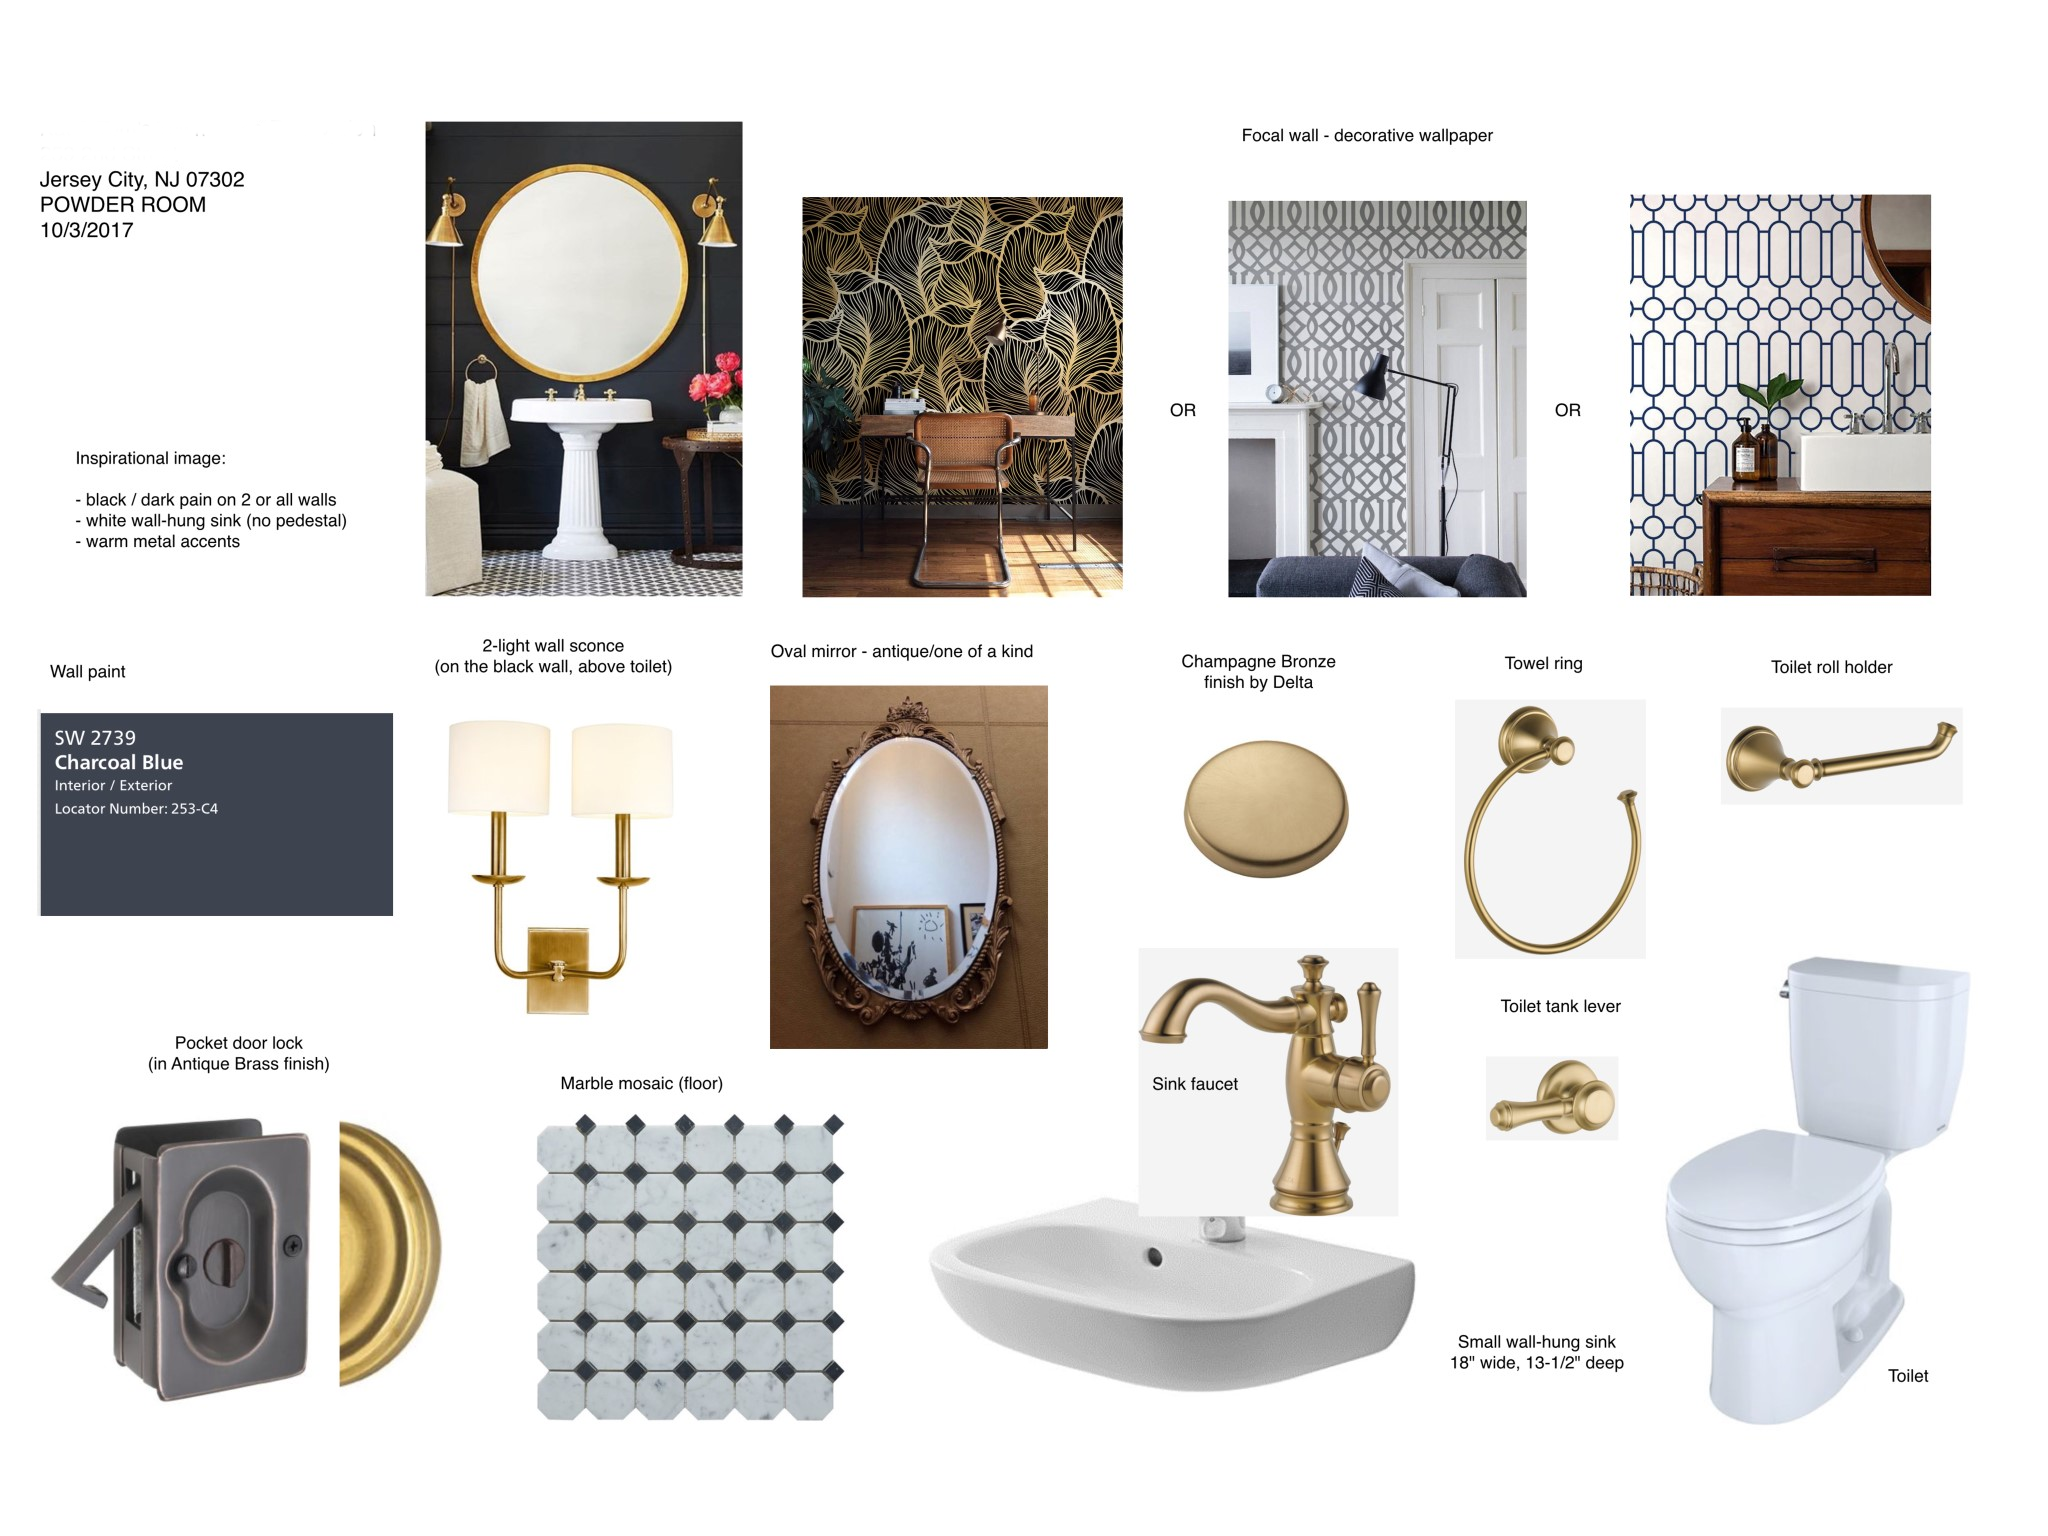 Historic District Brownstone Remodel Project In Process History Revitalized Powder Room Mood Board